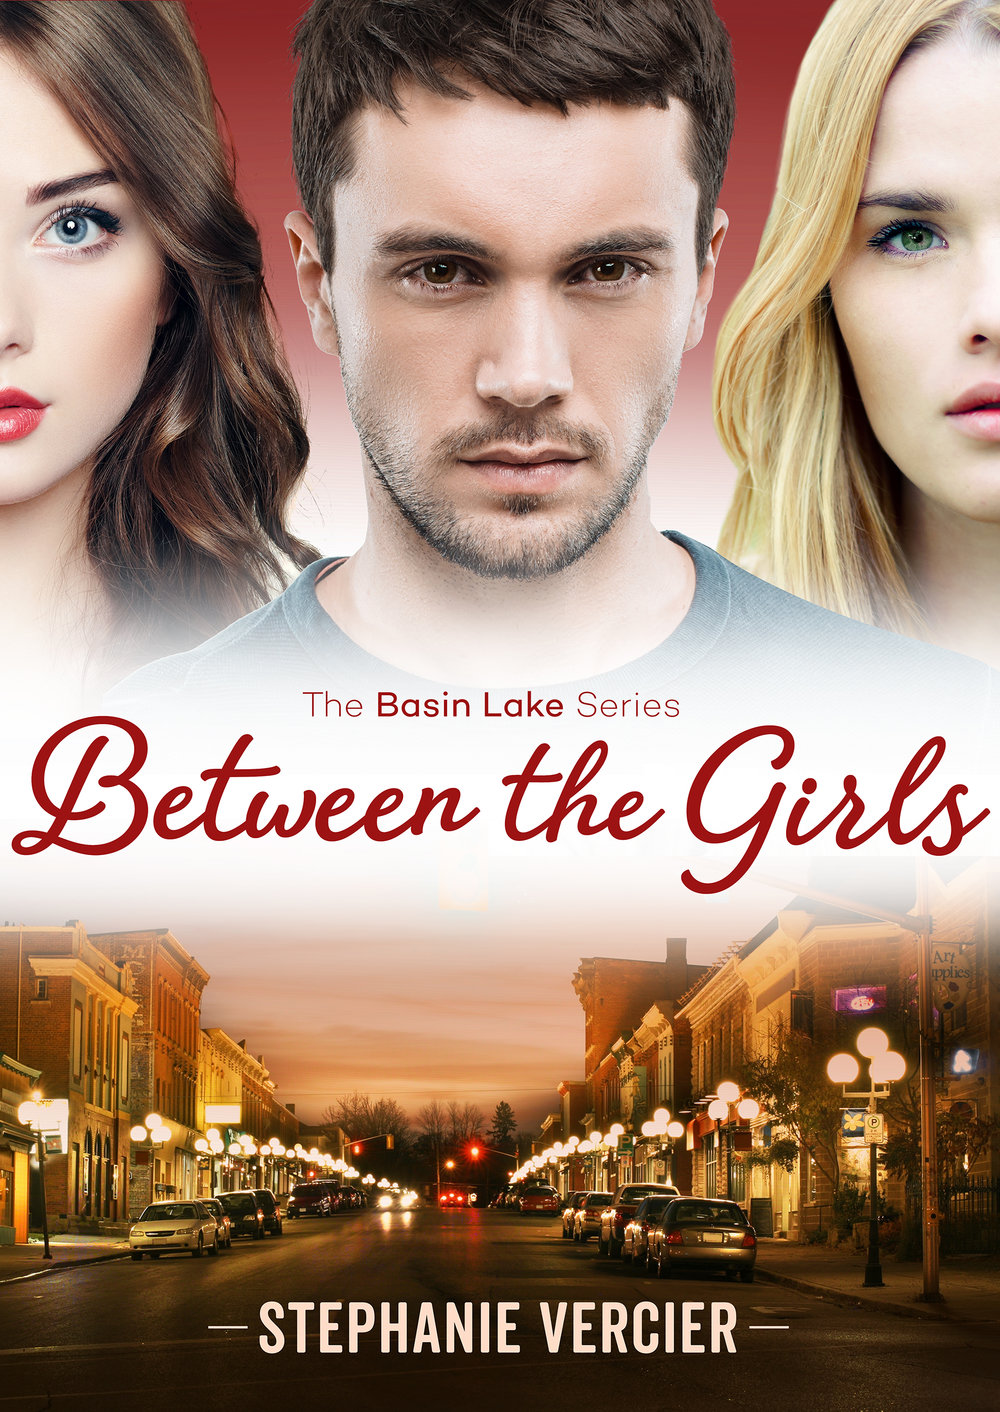 Between the Girls cover v1.jpeg